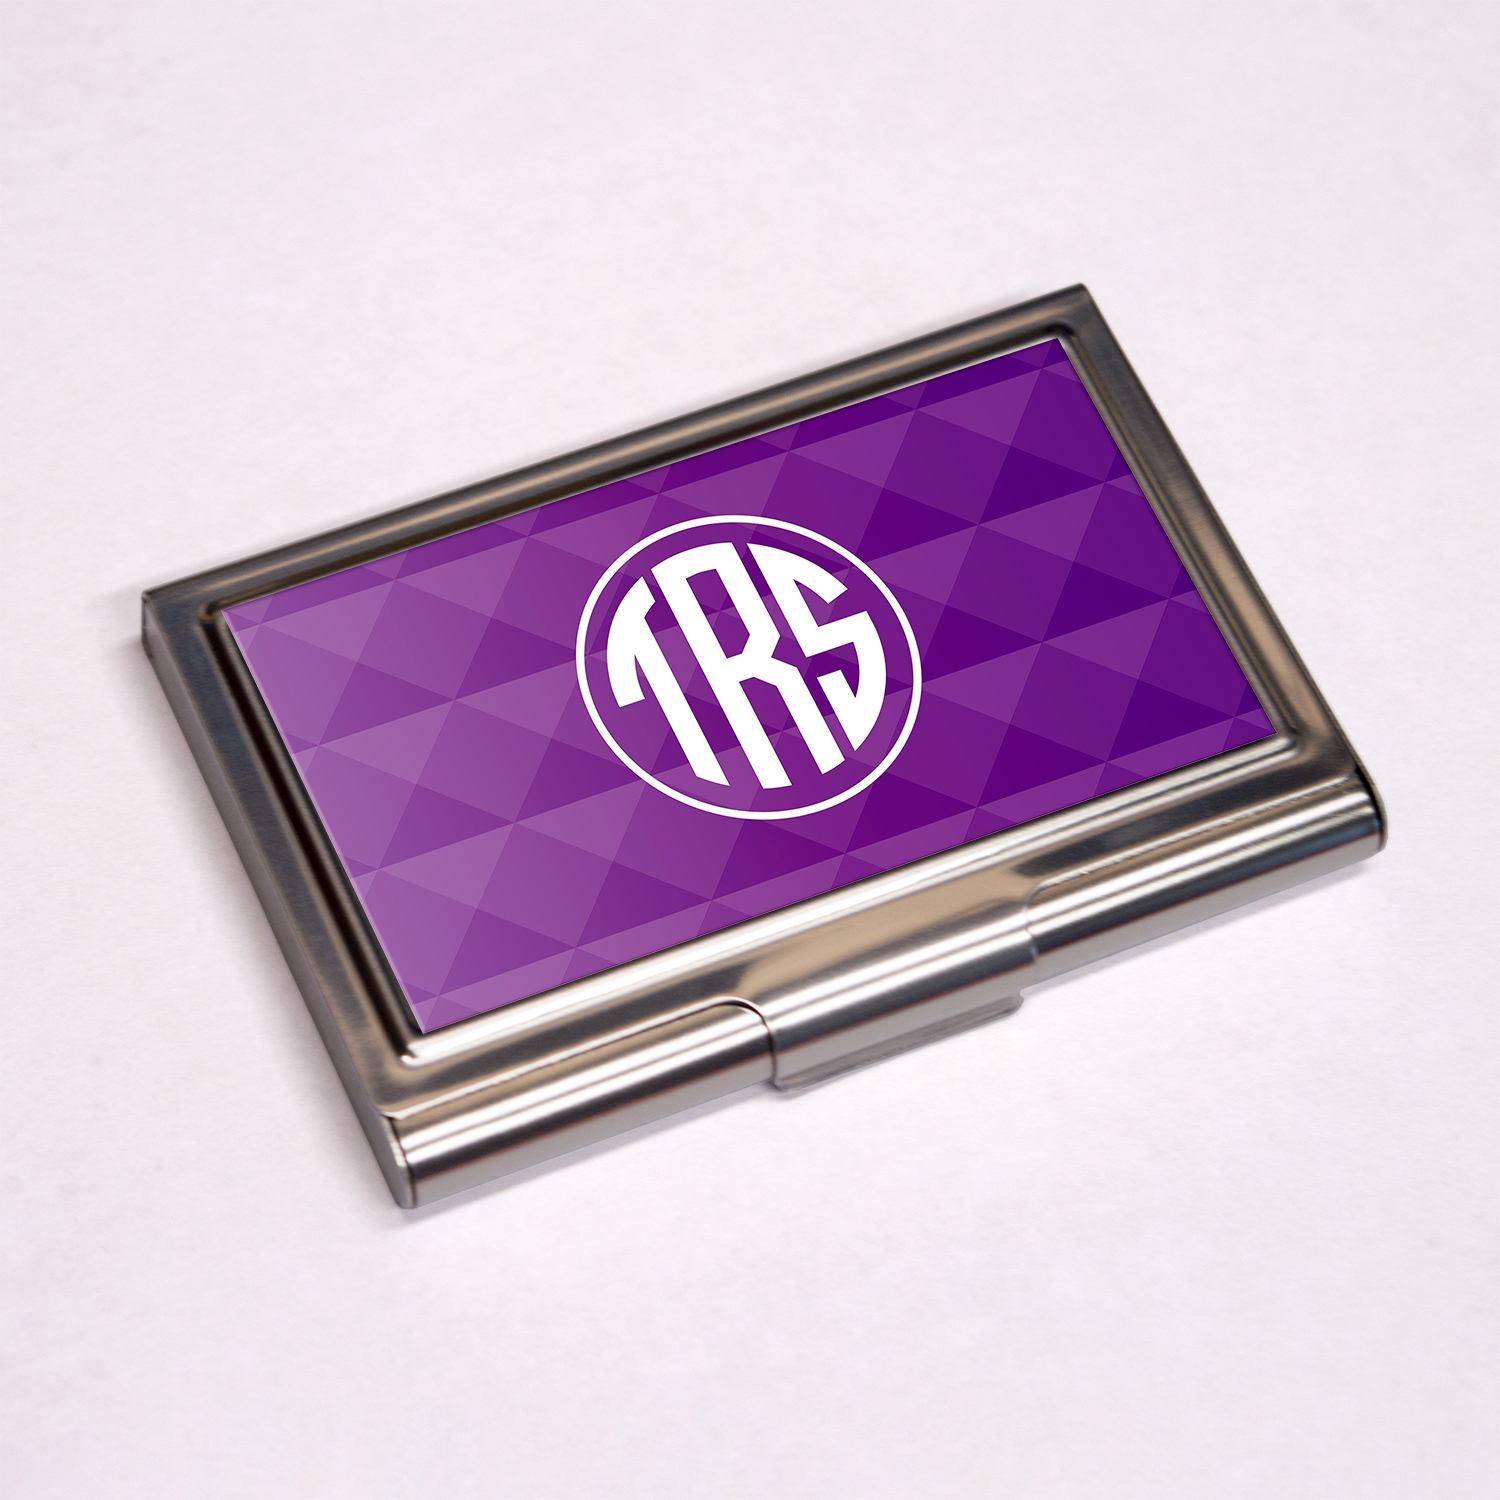 Personalised business card holder colour printed sublimation bch 107 personalised business card holder colour printed sublimation bch 107 reheart Image collections